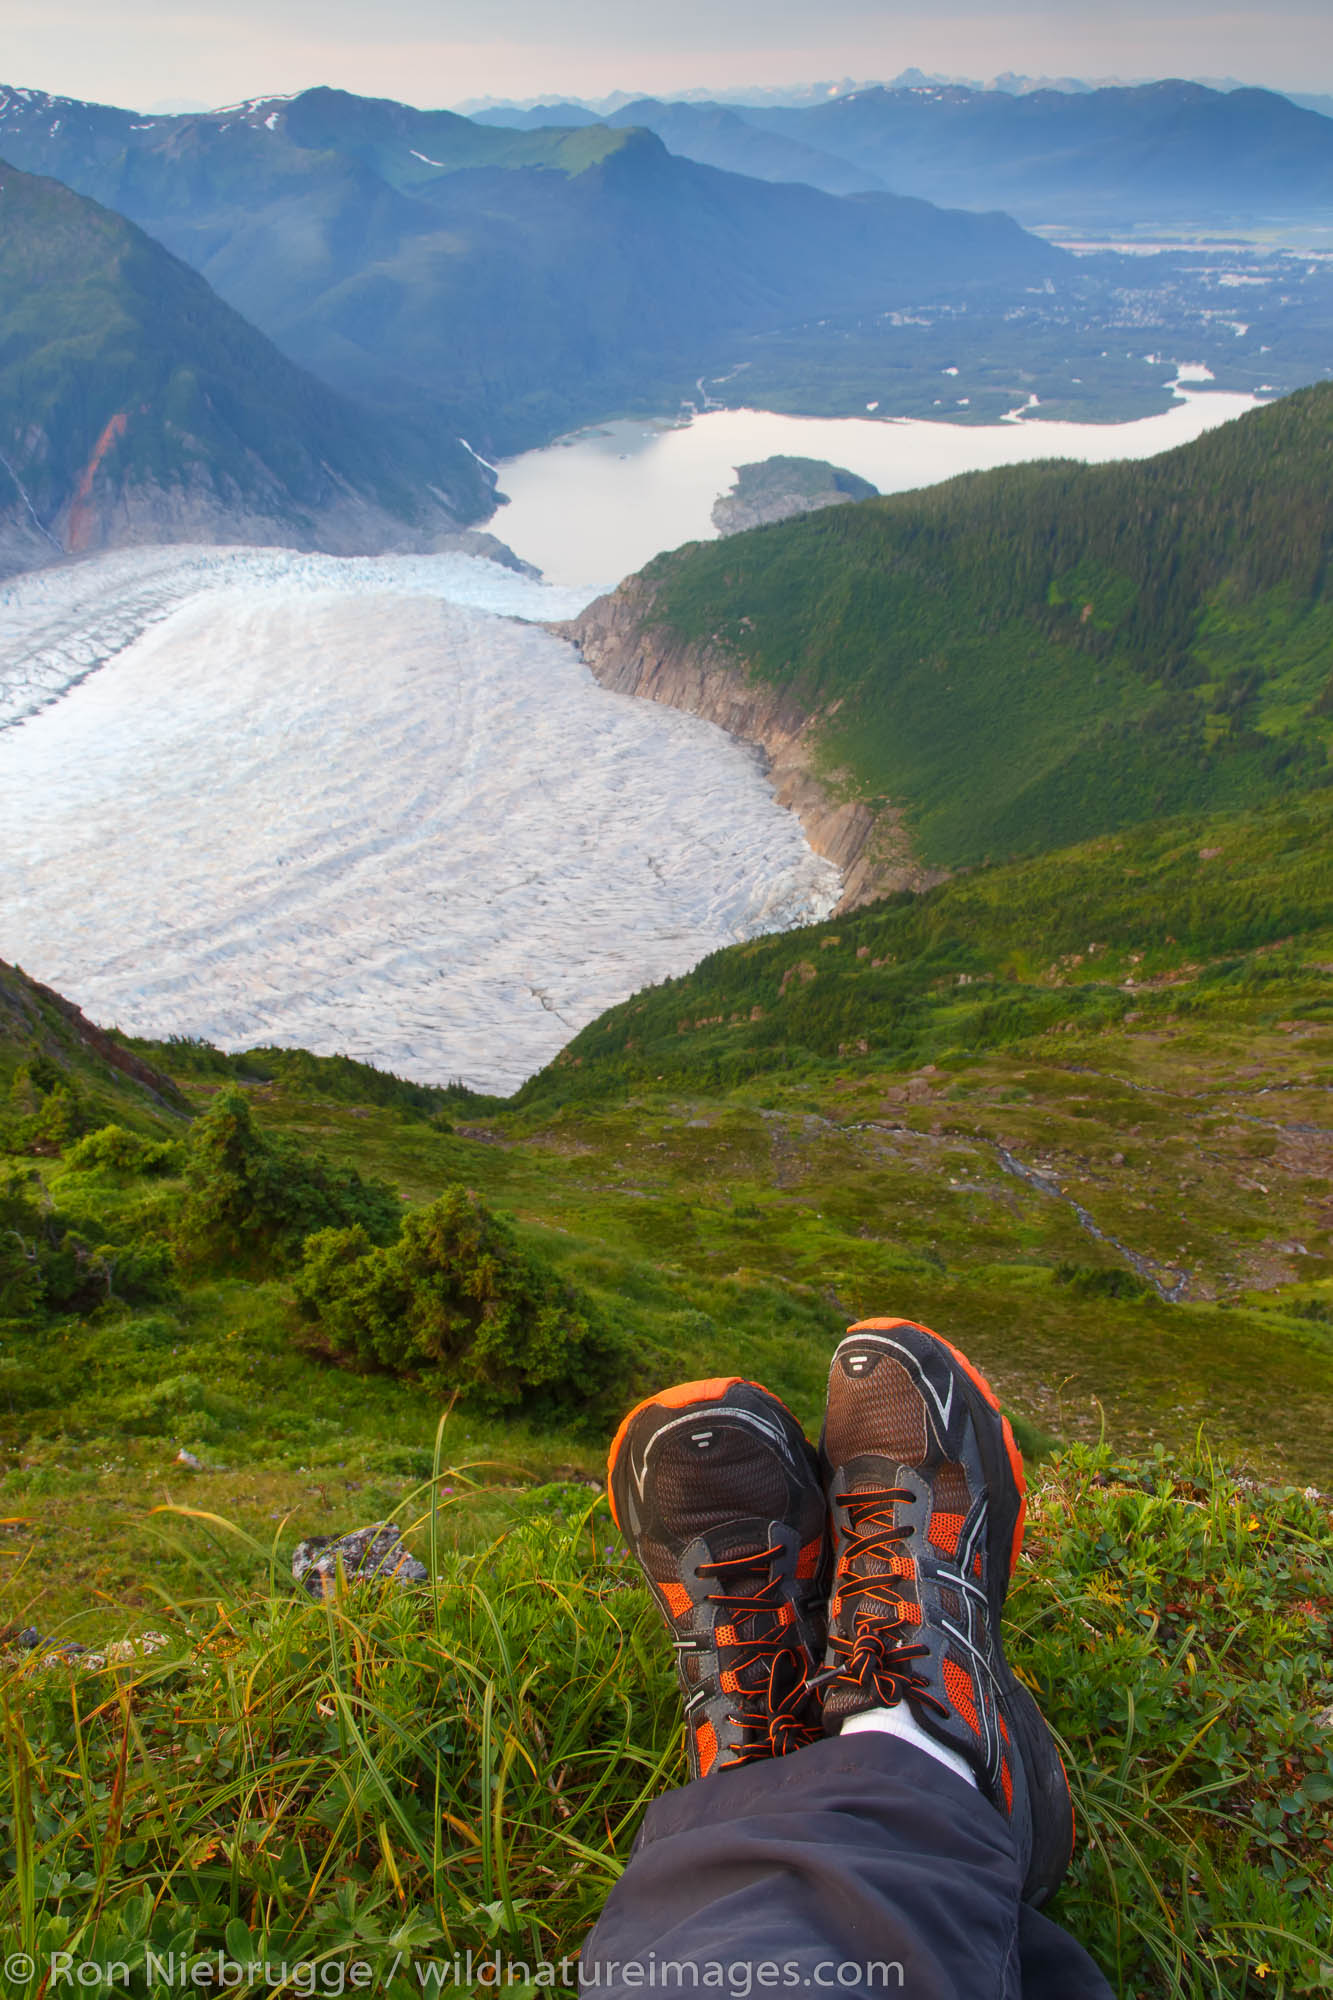 A hiker on Mount Stroller White above the Mendenhall Glacier, Tongass National Forest, Alaska.